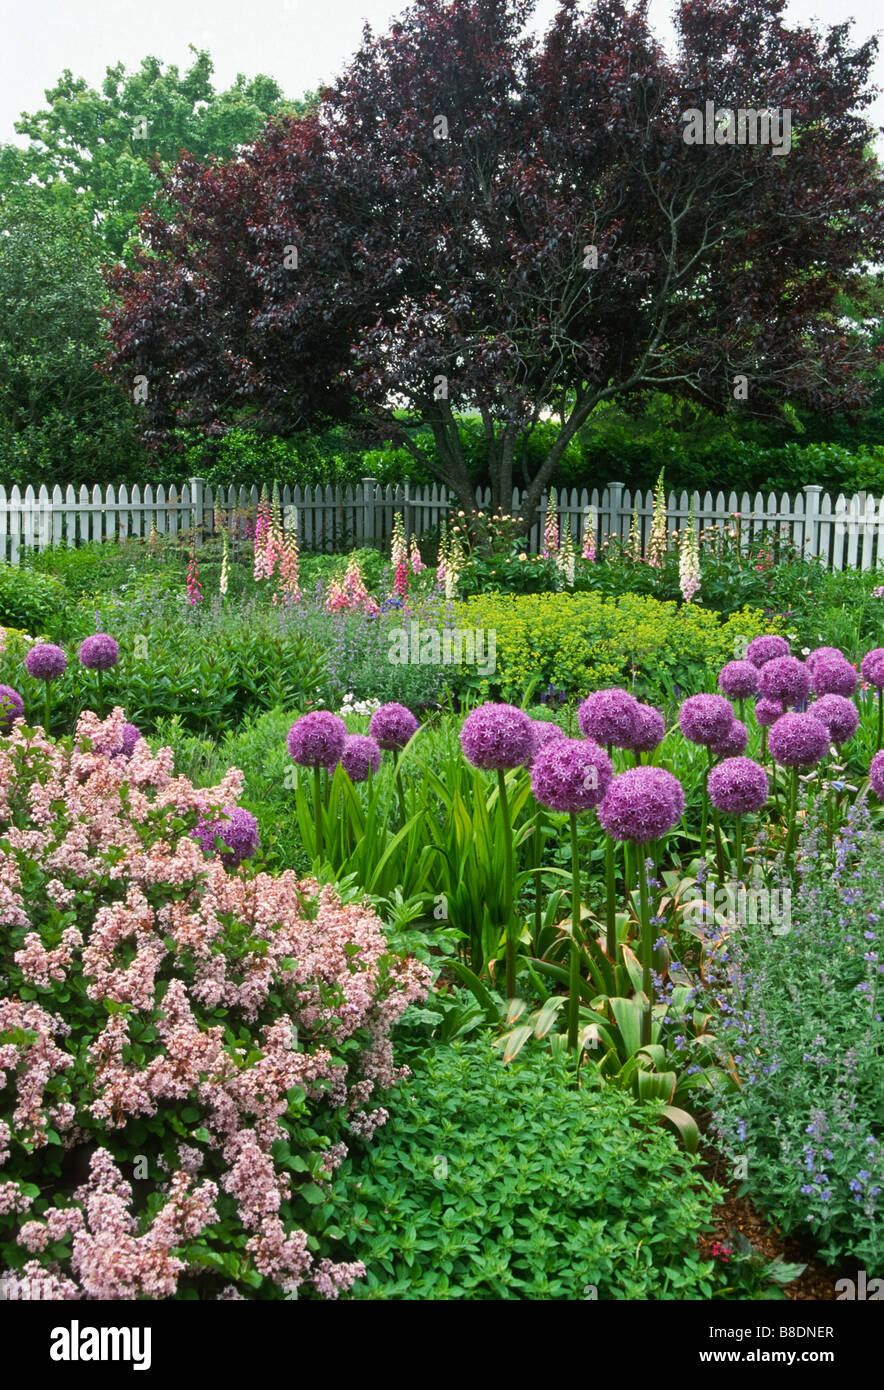 A flower garden designed with a pink, blue, purple color scheme brims with flowers of contrasting shapes and textures Stock Photo